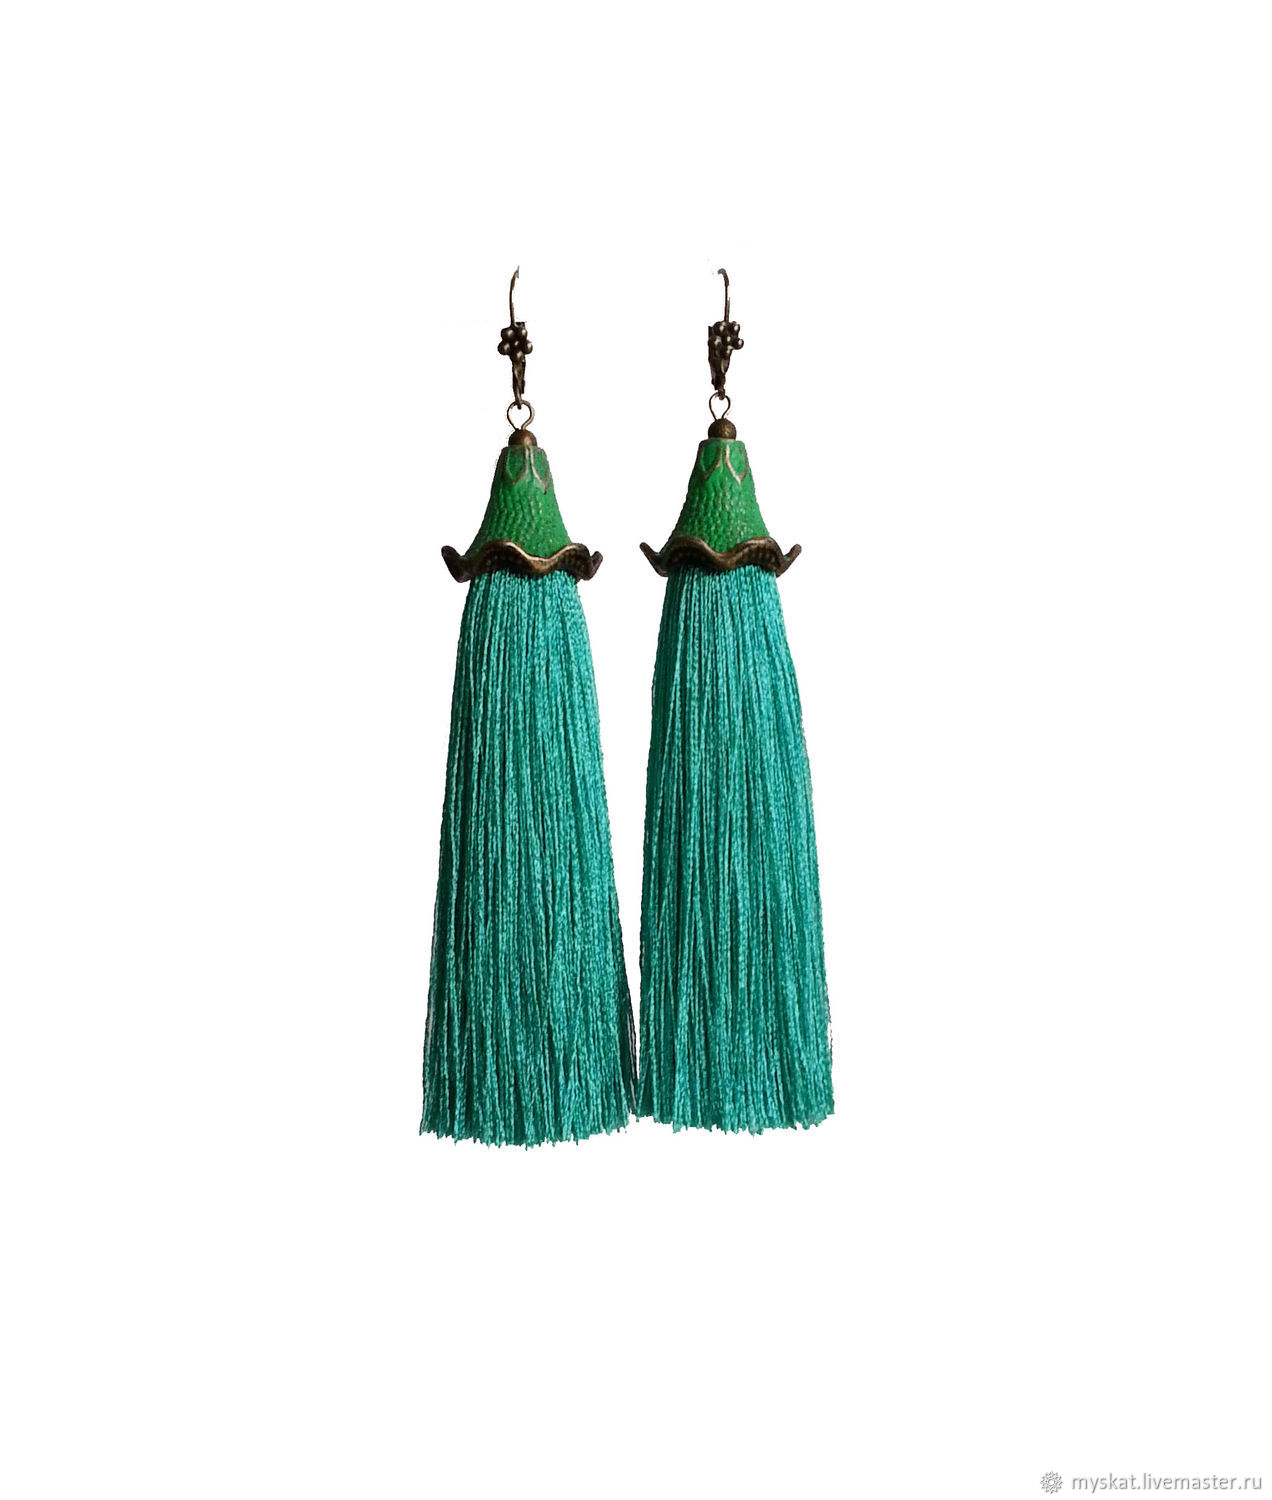 Earrings tassels bells, Tassel earrings, Moscow,  Фото №1